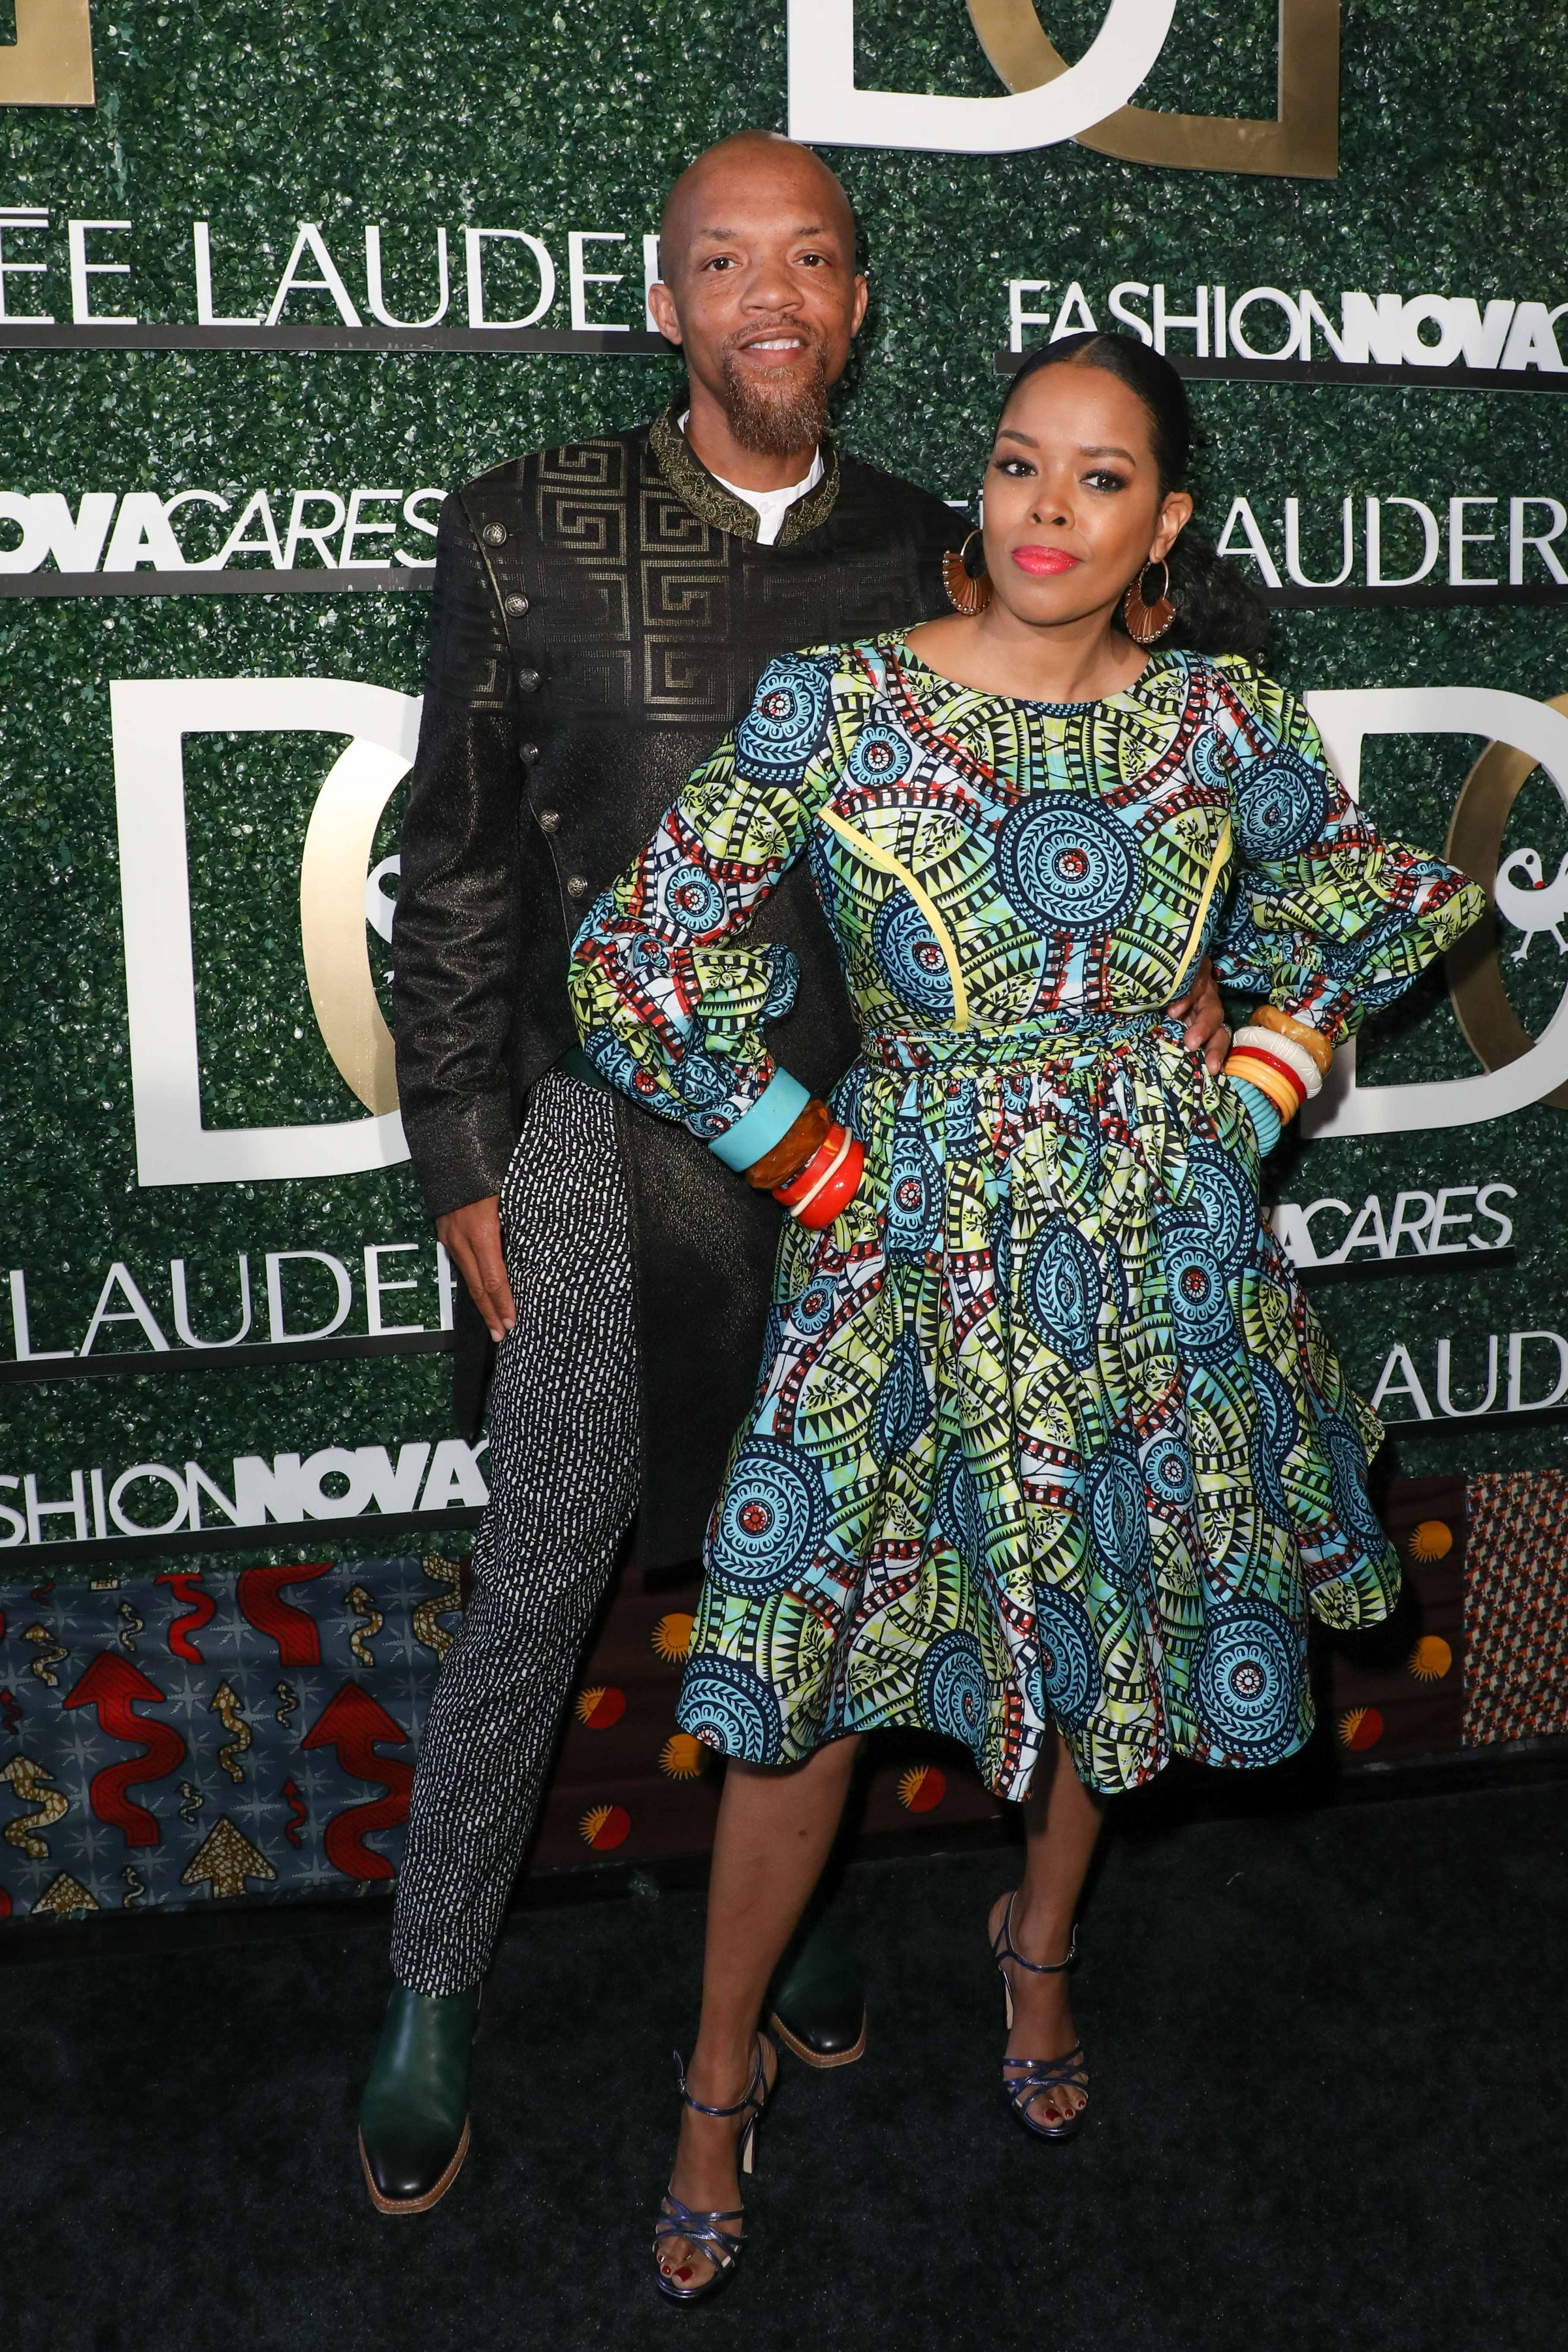 Actress Malinda Williams Gets Engaged On National Proposal Day